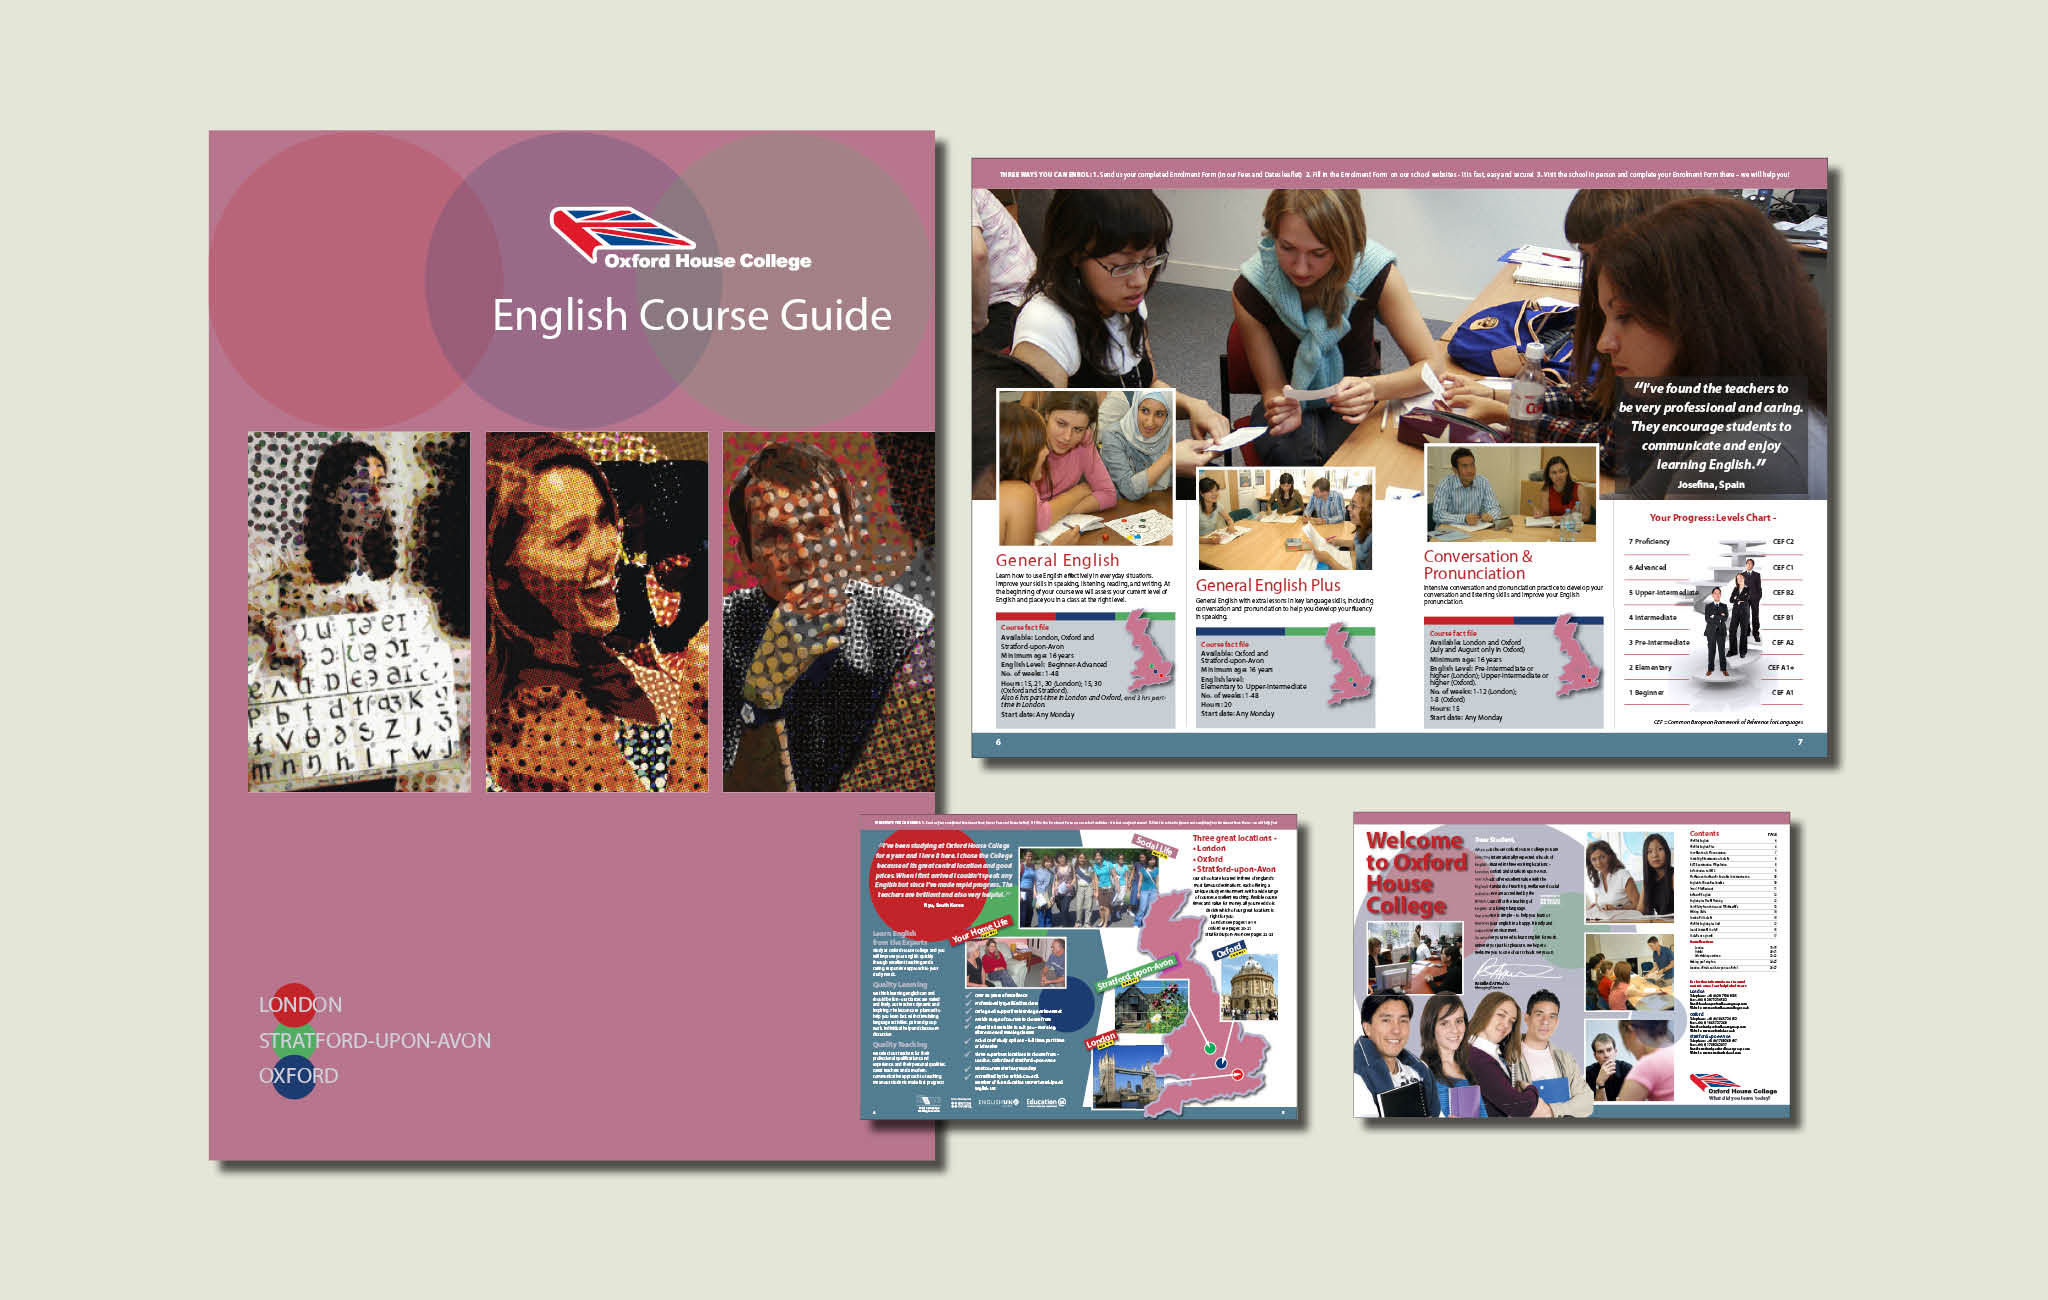 Brochure design for English Courses Guide, Oxford House College